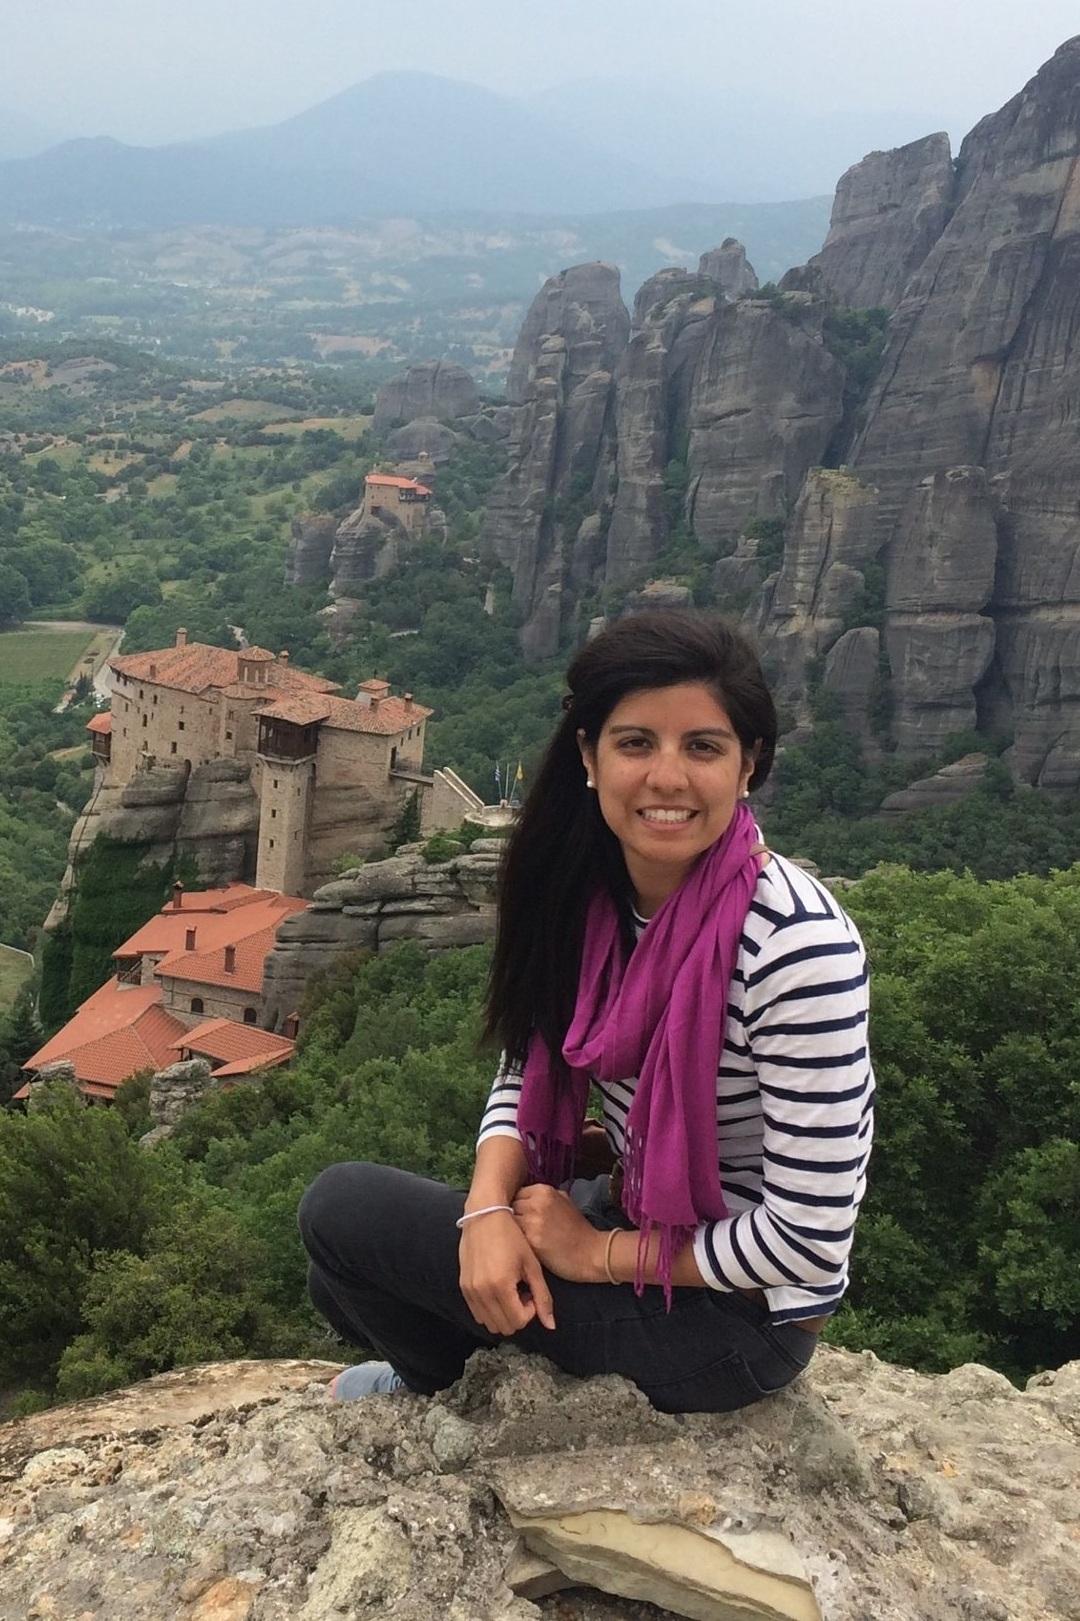 Olga Garcia, FNP - Training Institution: Vanderbilt University School of NursingYear Joined: 2018Special Interests: Travel, Baking, Volunteering